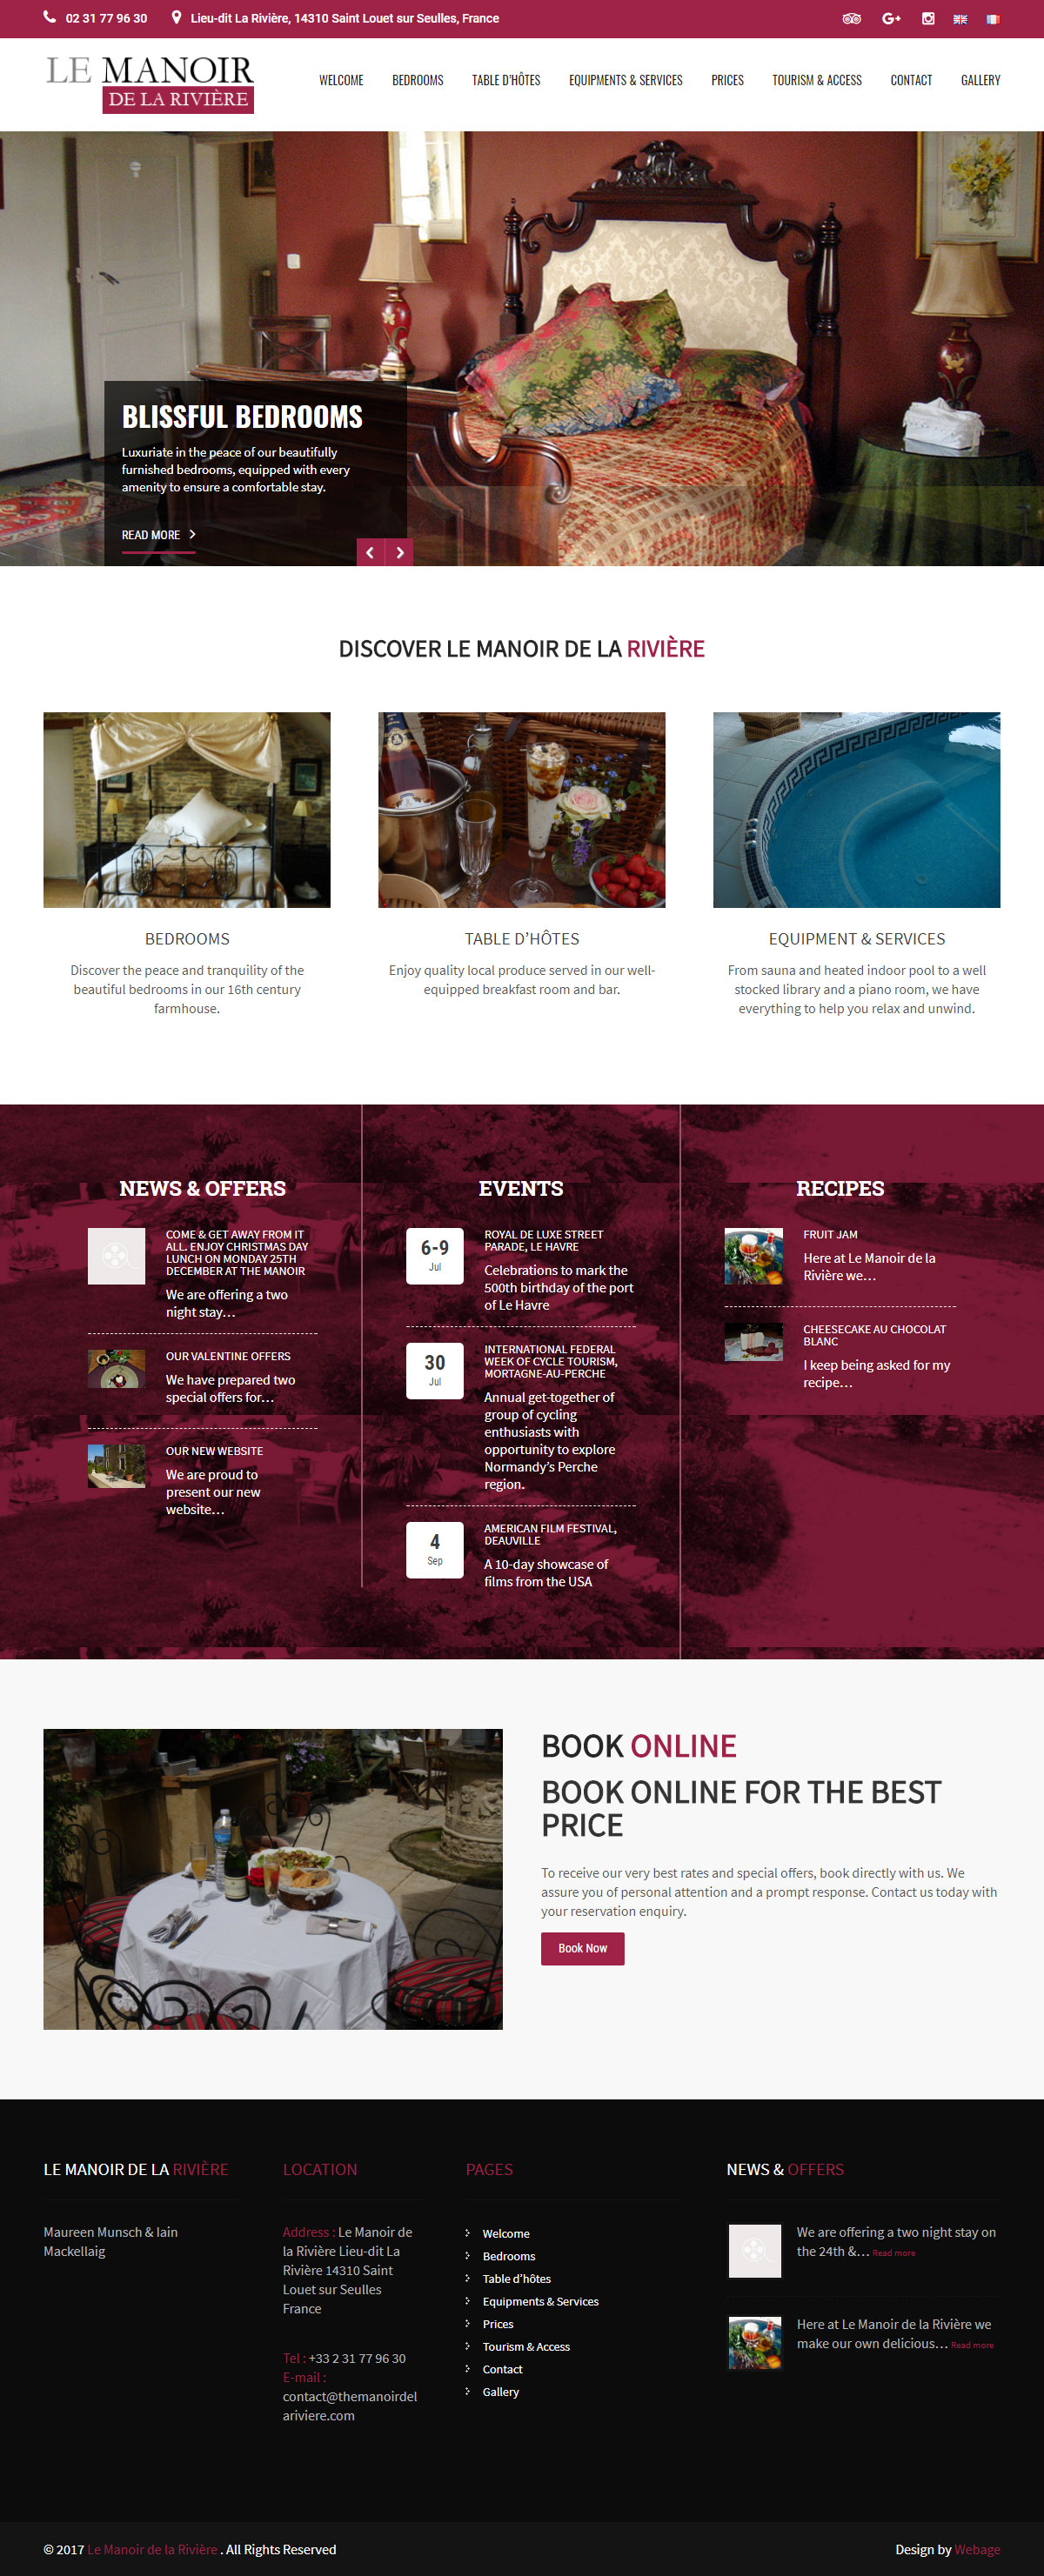 le-manoir-de-la-riviere-full-screenshot-bed-and-breakfast-hotel-guest-house